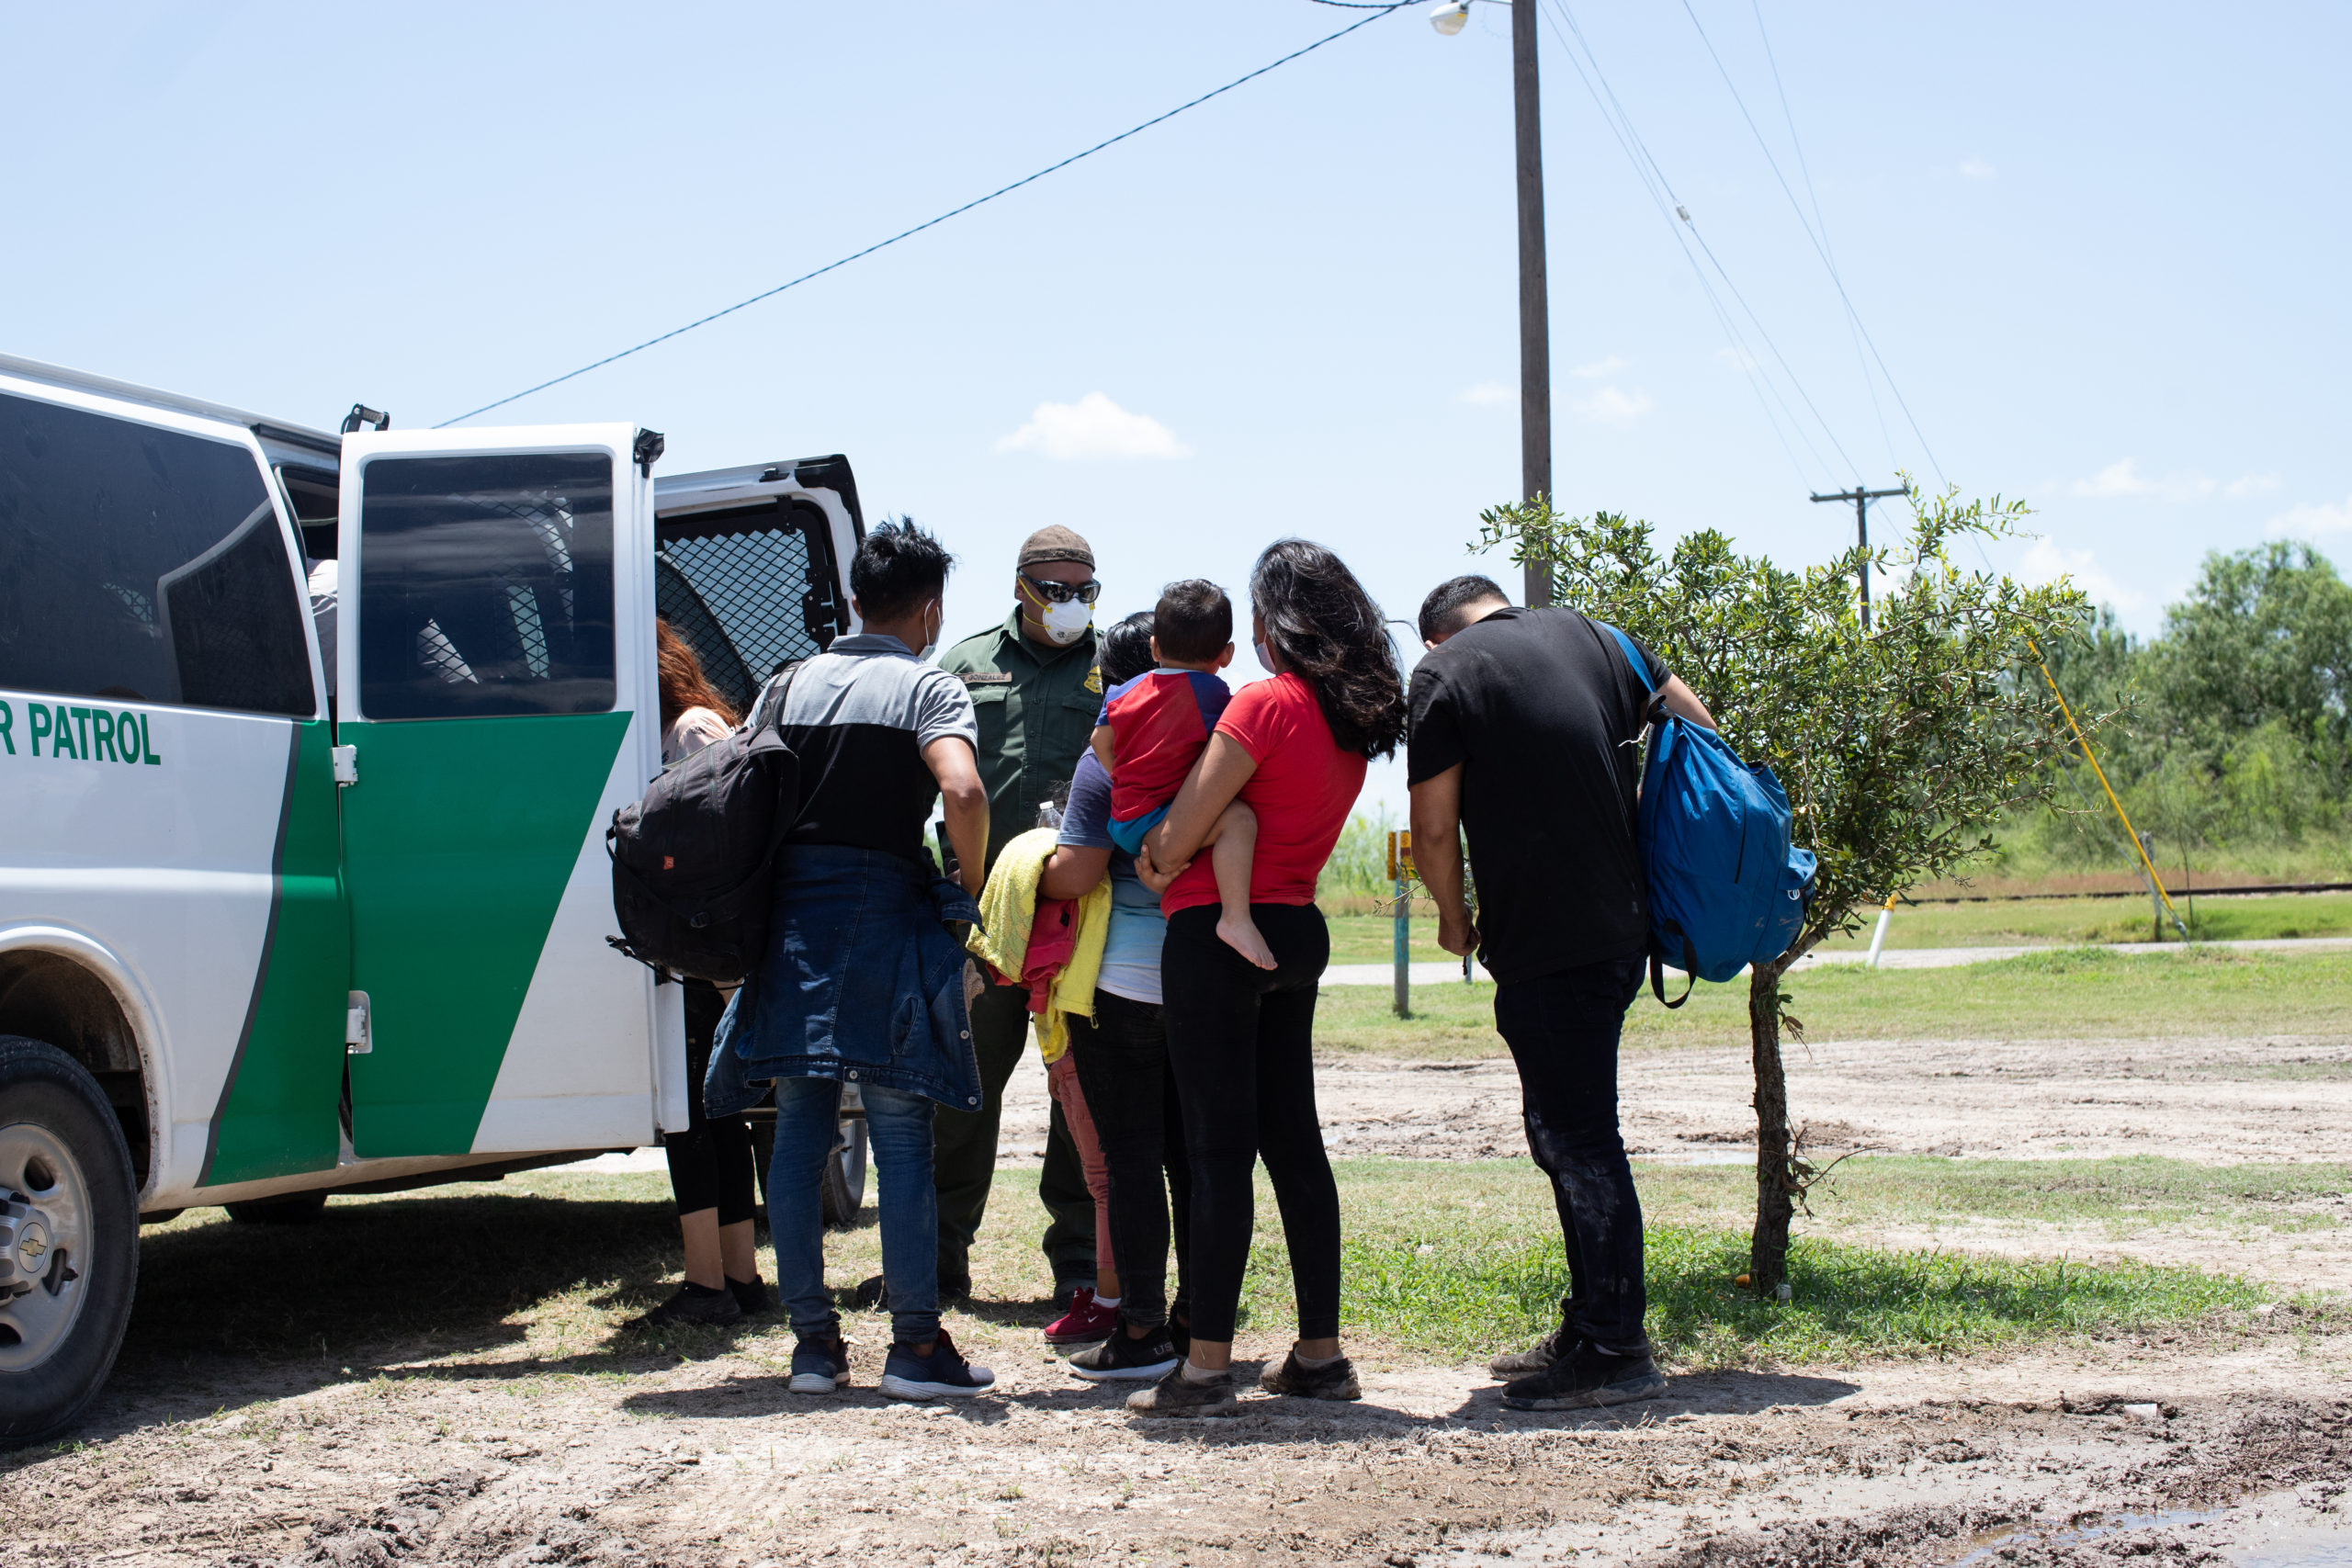 A group of migrants turned themselves in to Customs and Border Protection officials to be processed in hopes of applying for asylum near La Joya, Texas, on August 7, 2021. (Kaylee Greenlee - Daily Caller News Foundation)